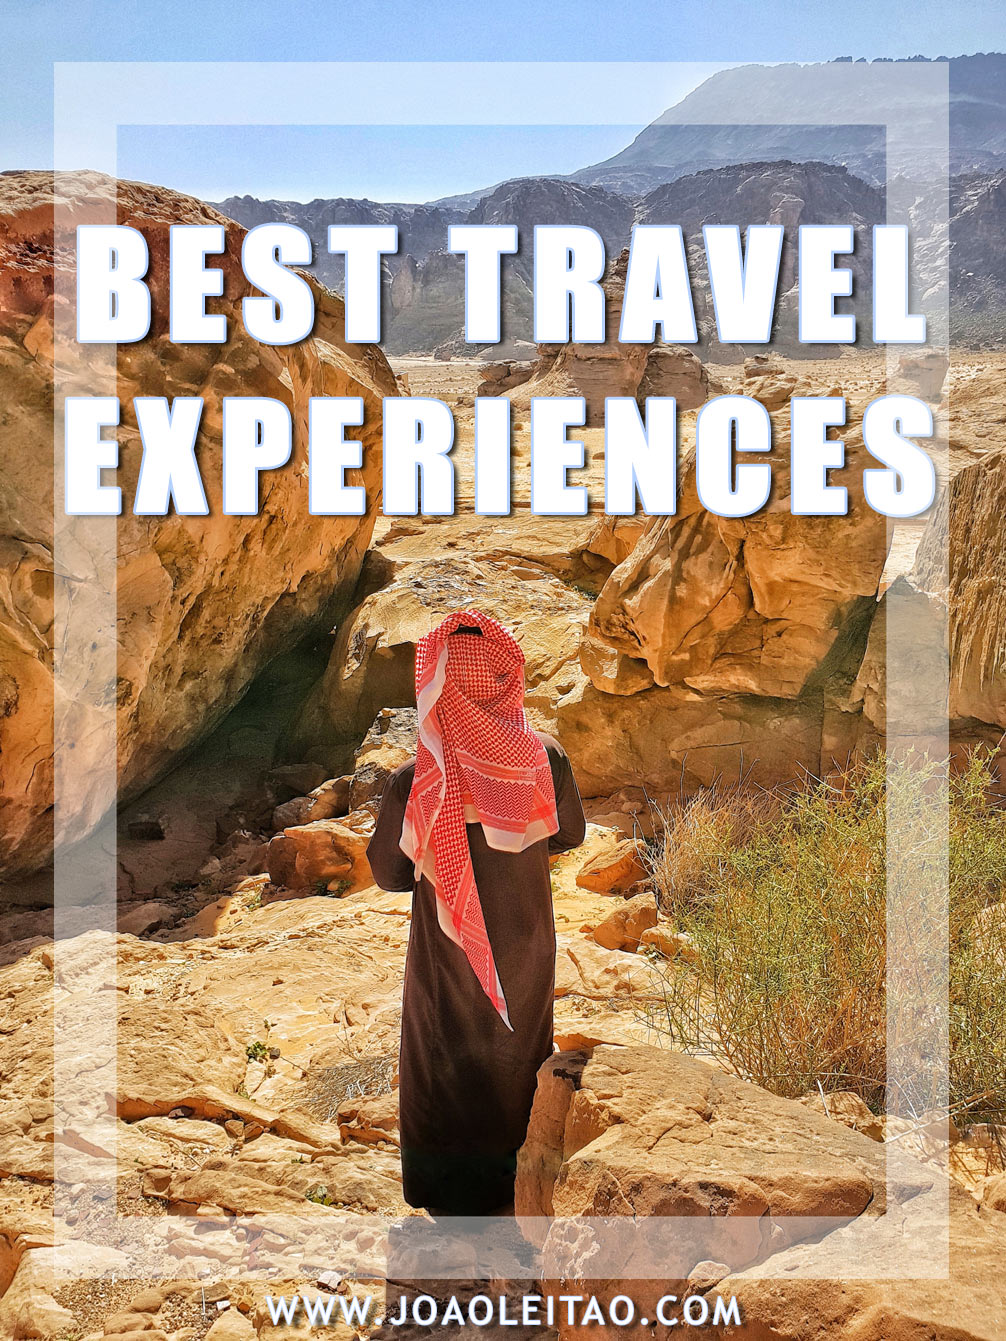 BEST-TRAVEL-EXPERIENCES